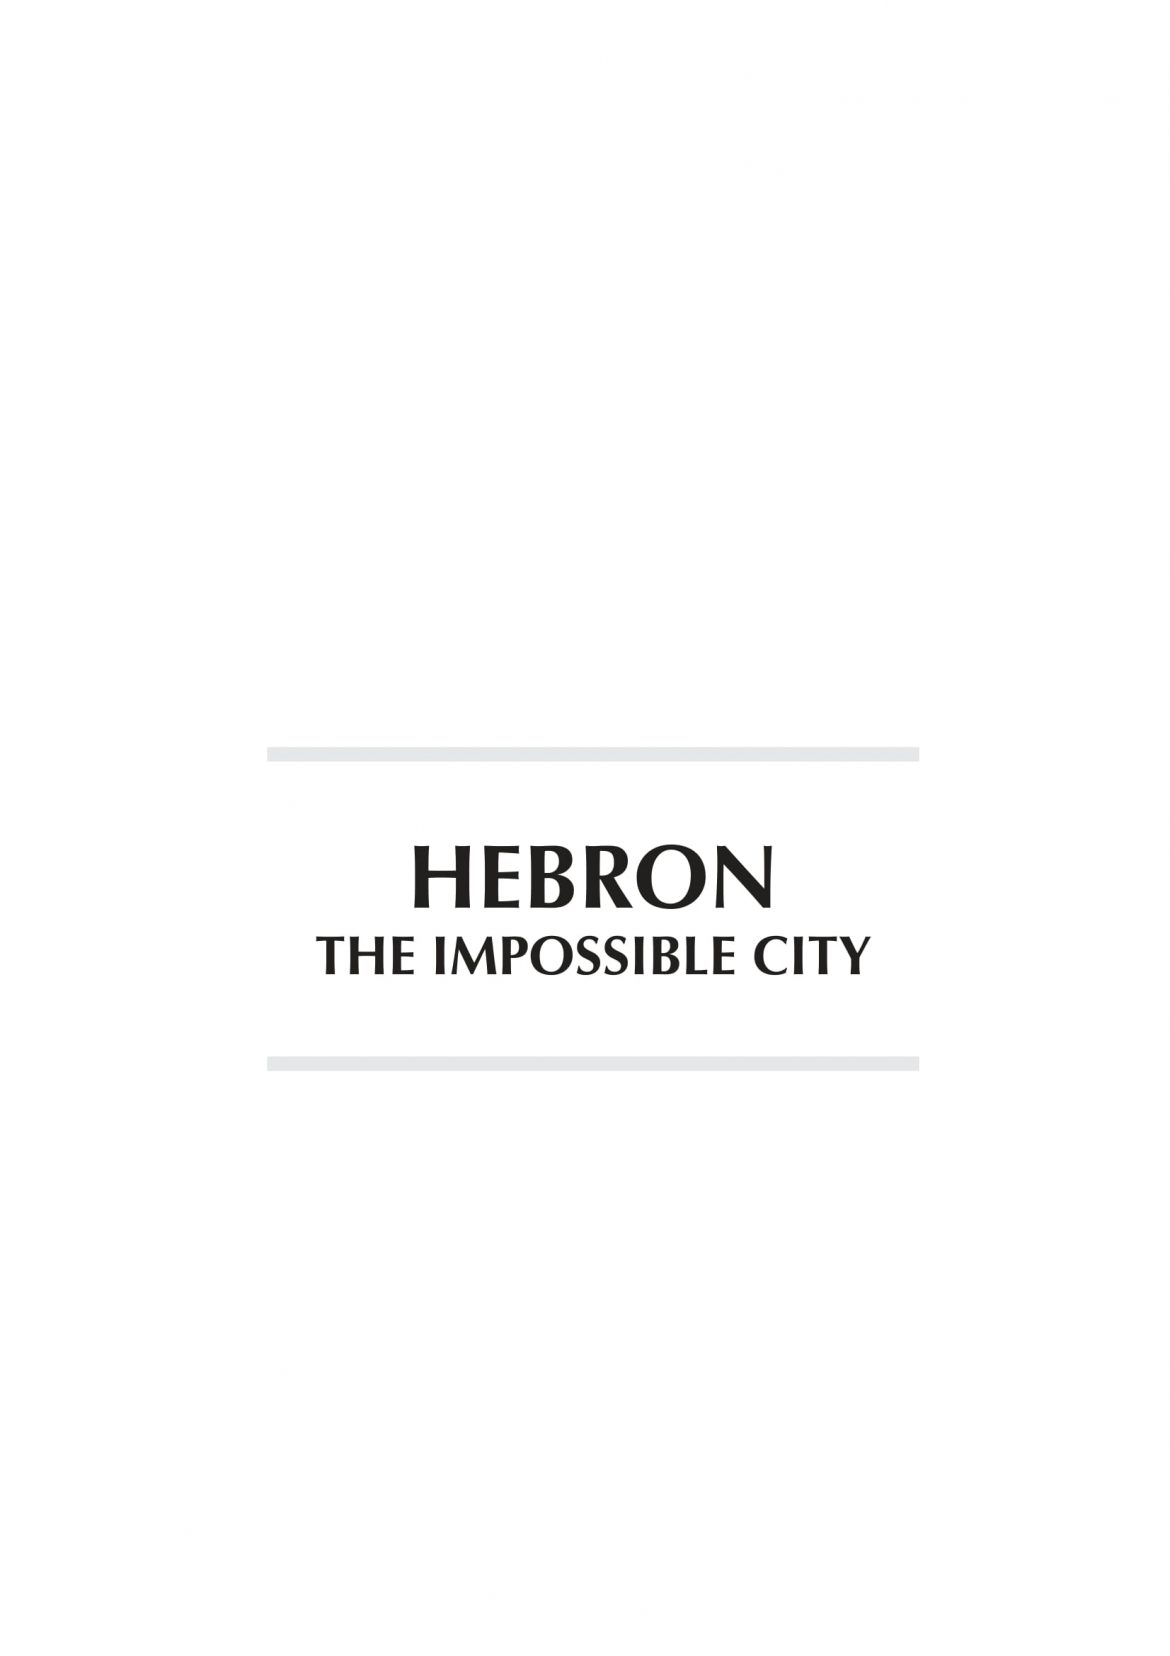 Hebron – The impossible city